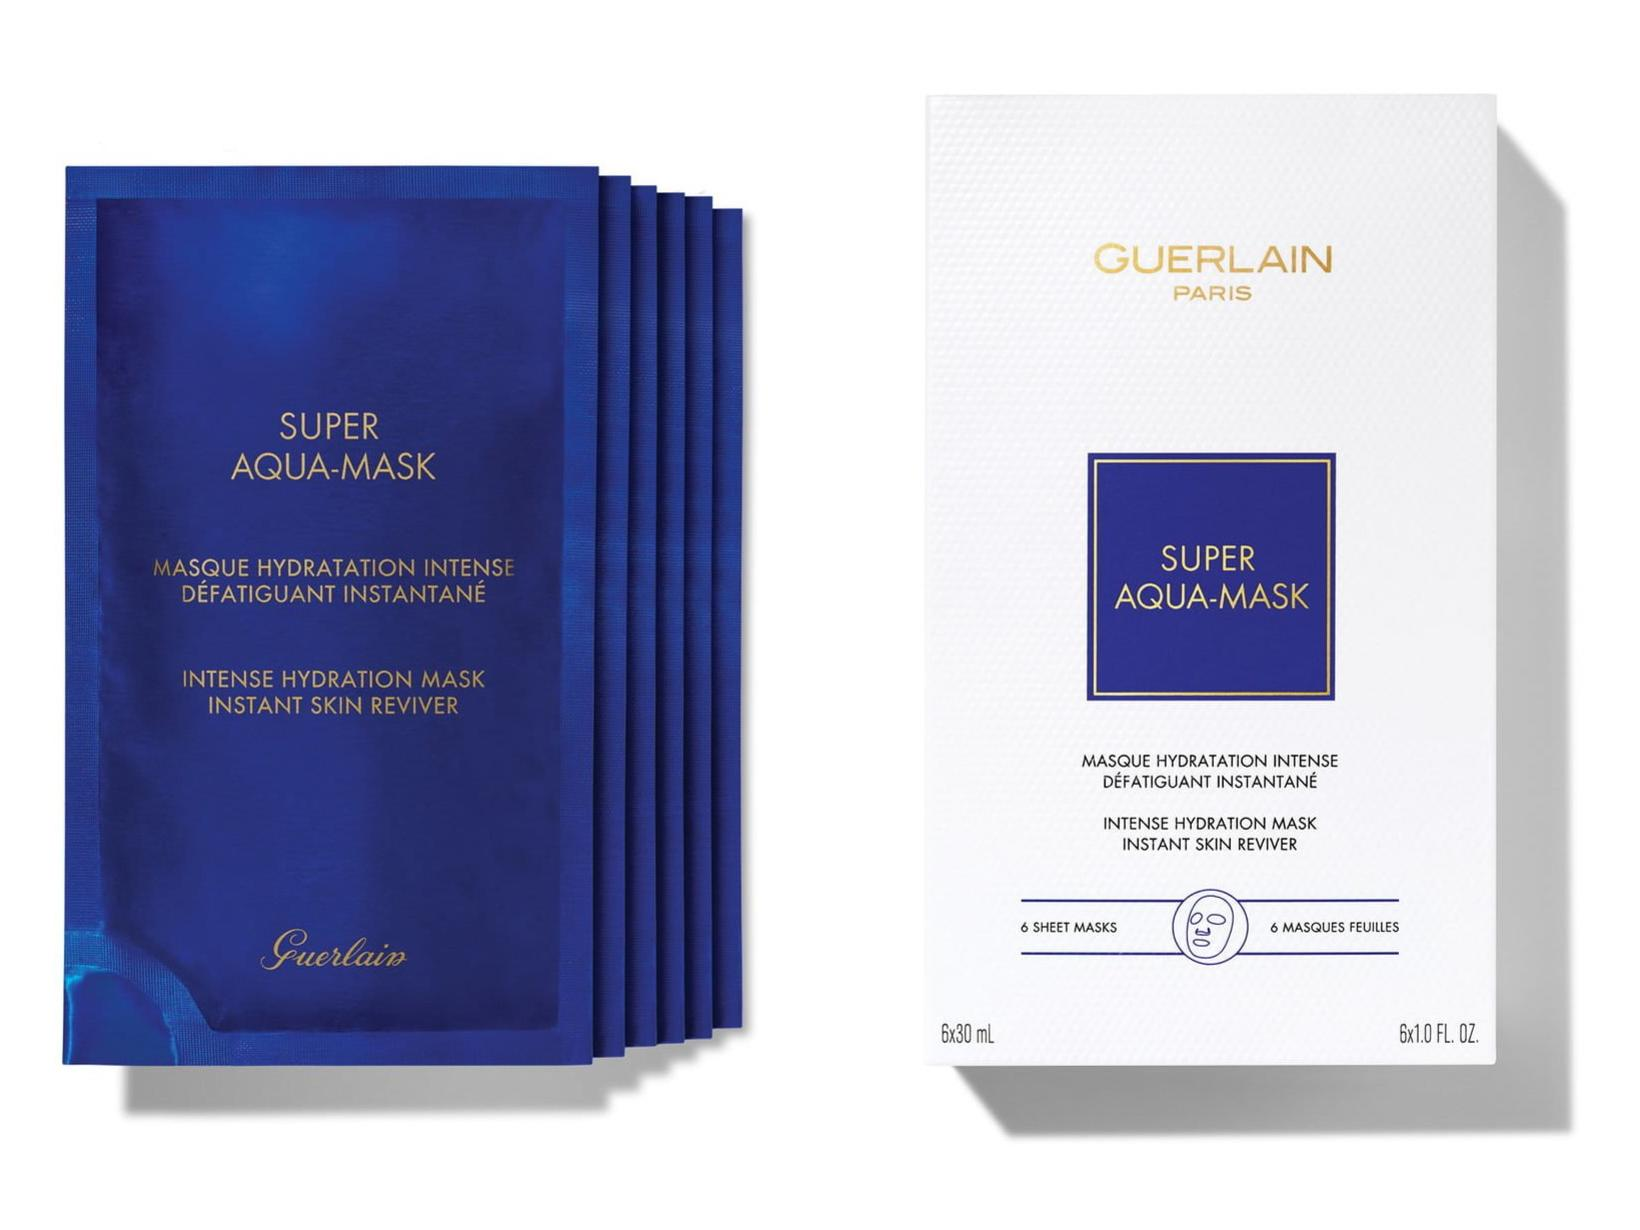 Guerlain Super Aqua-Mask Intense Hydration Mask, 17.199 kr. (6 stykki)